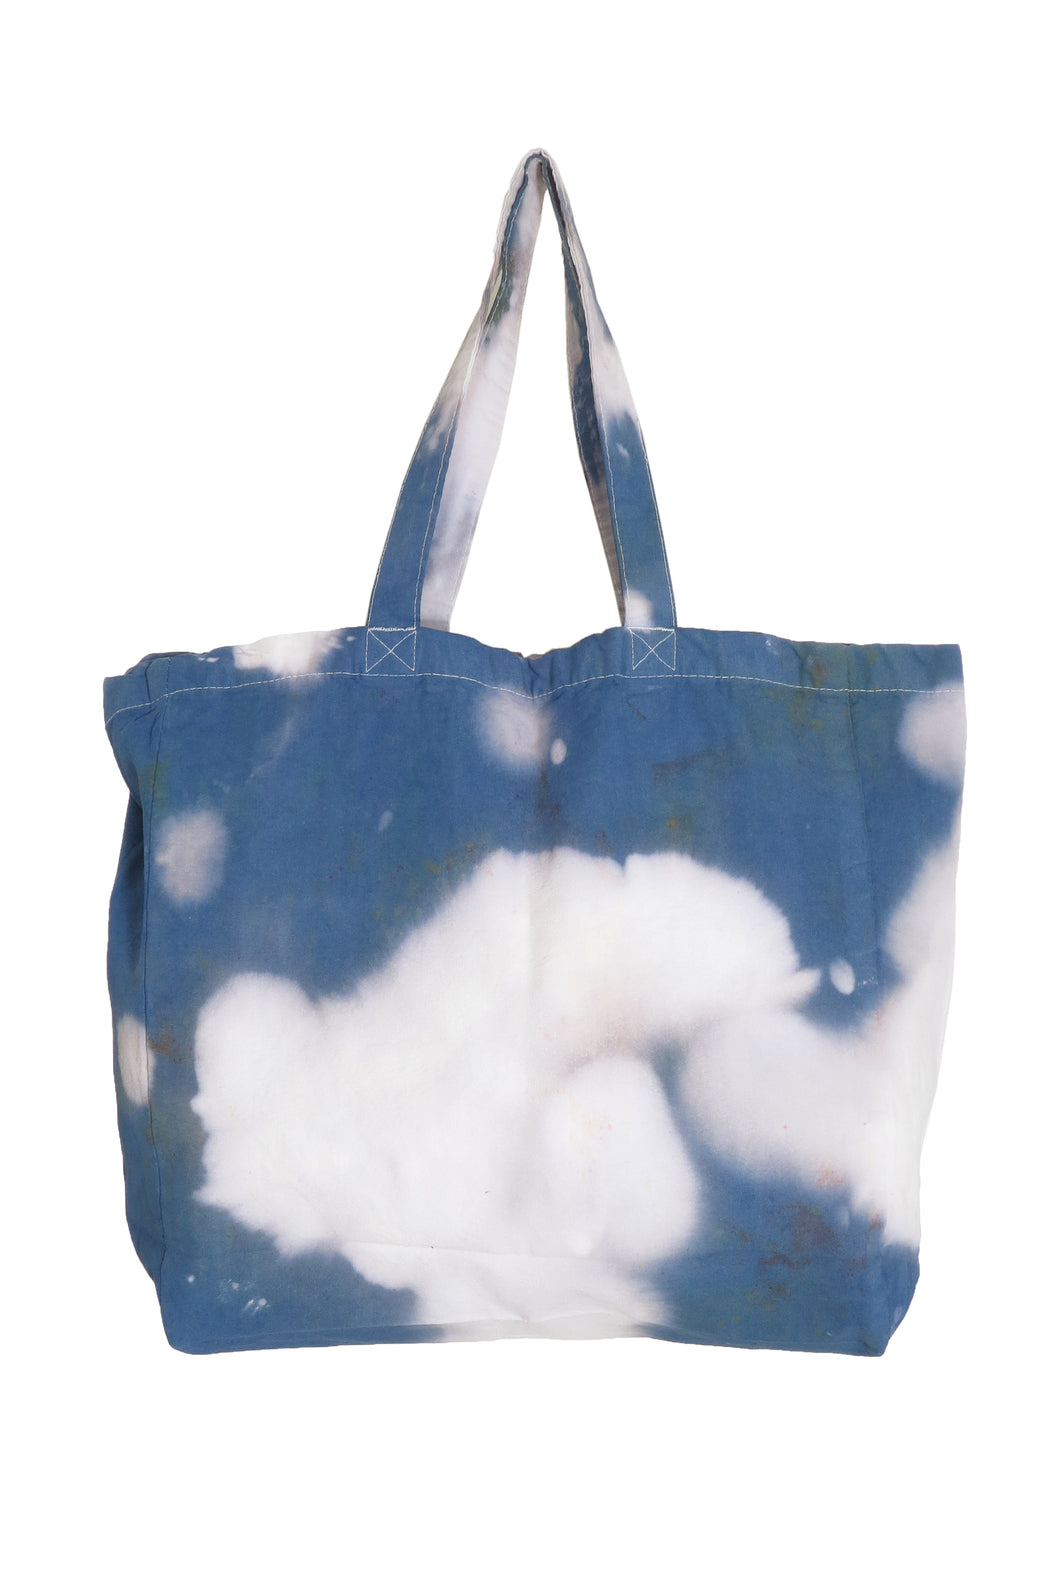 A&C SHOPPER BLUE&WHITE No.3